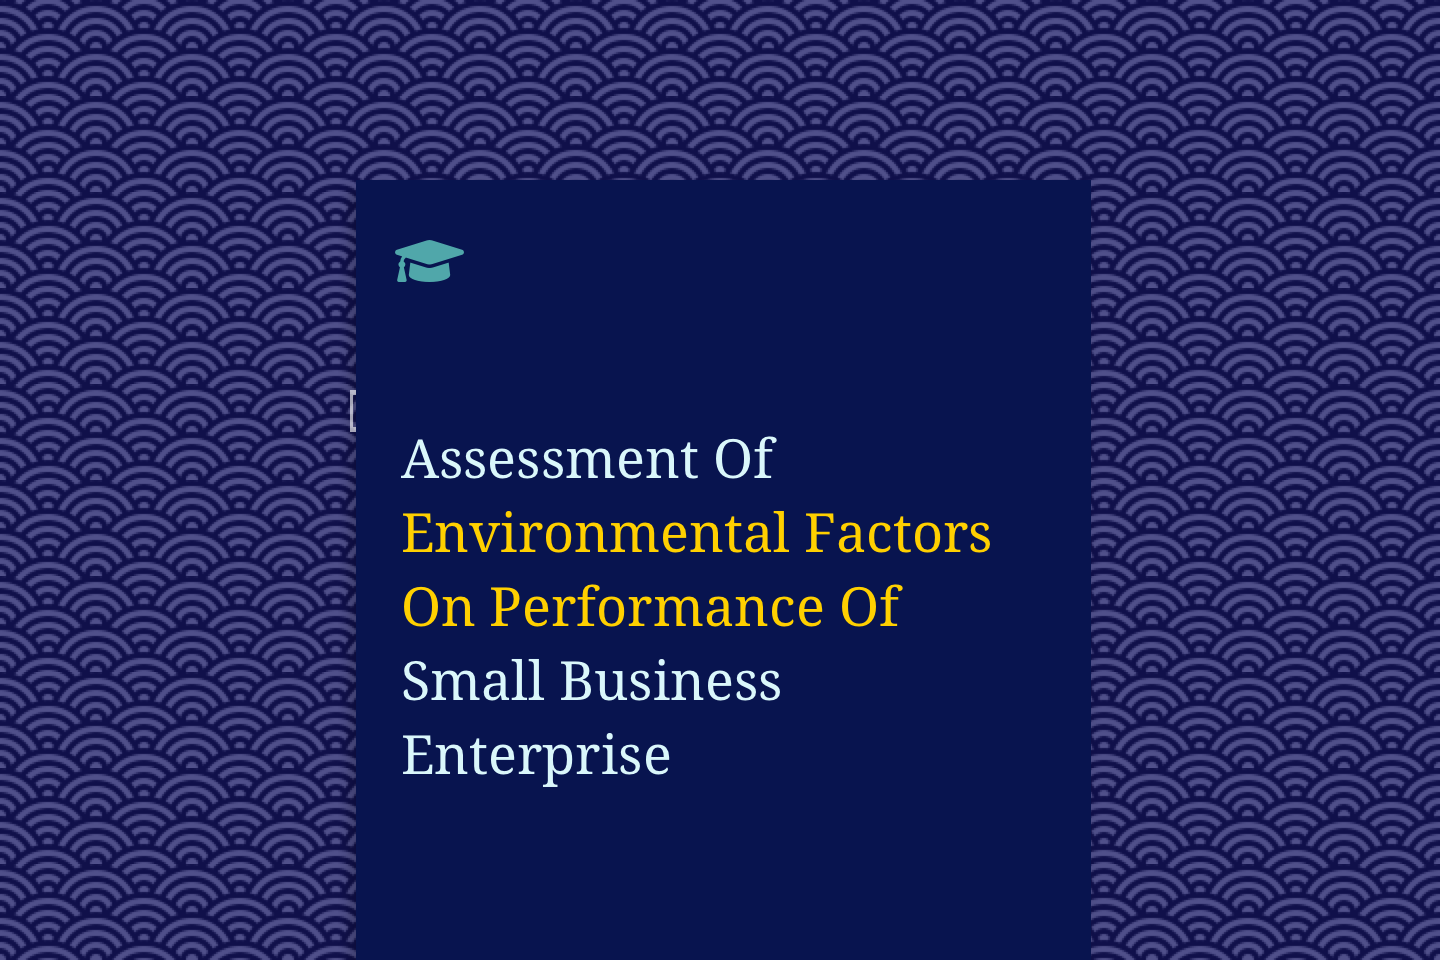 Assessment Of Environmental Factors On Performance Of Small Business Enterprise (A Case Study Of Jemok Table Water In Delta State)